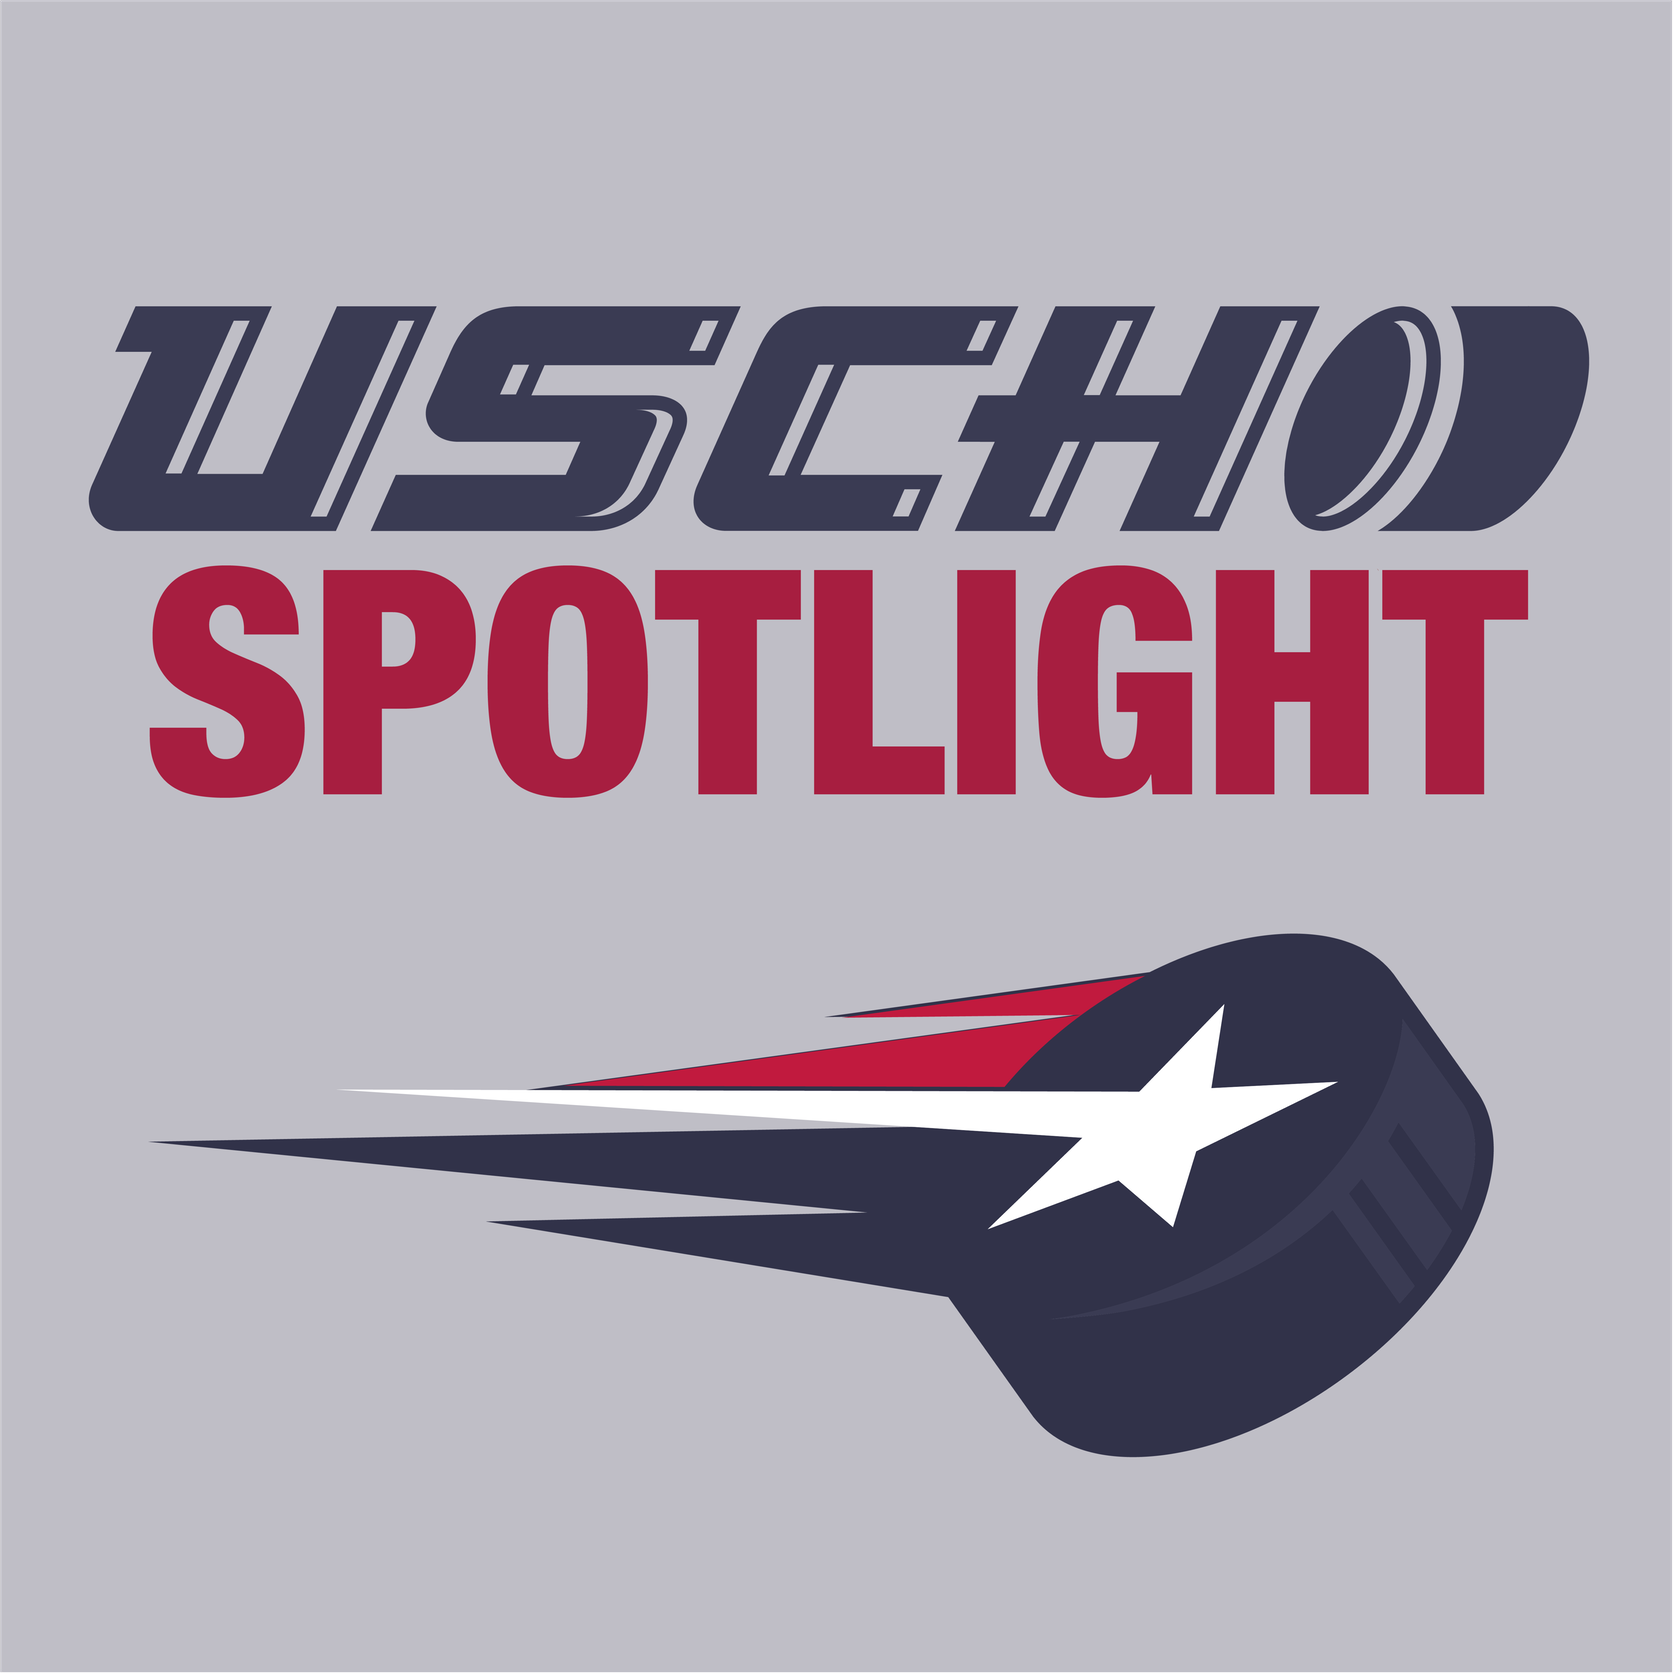 American International's Eric Lang on his team, recruiting, impact of 2019 NCAA tournament: USCHO Spotlight Season 2 Episode 16